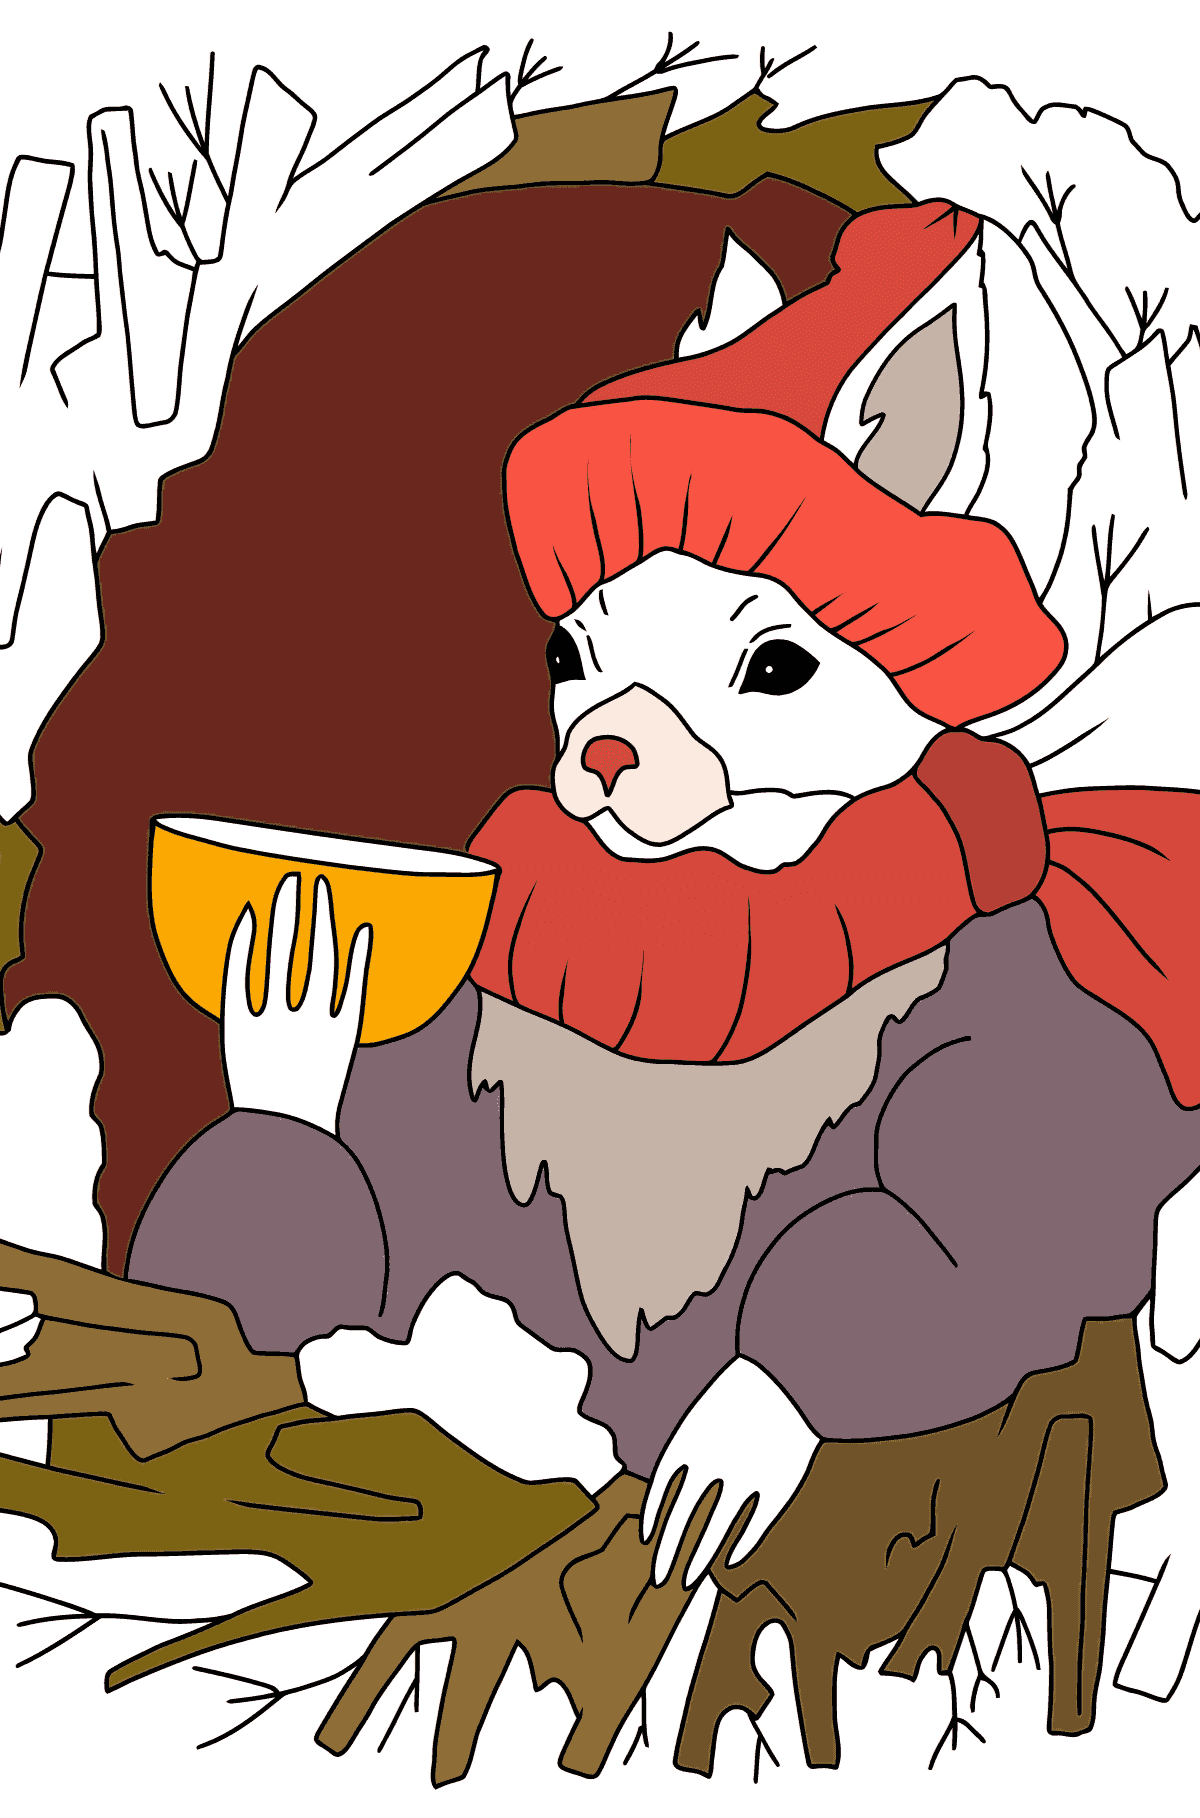 Winter Coloring Page - A Squirrel is Drinking Delicious Tea for Children